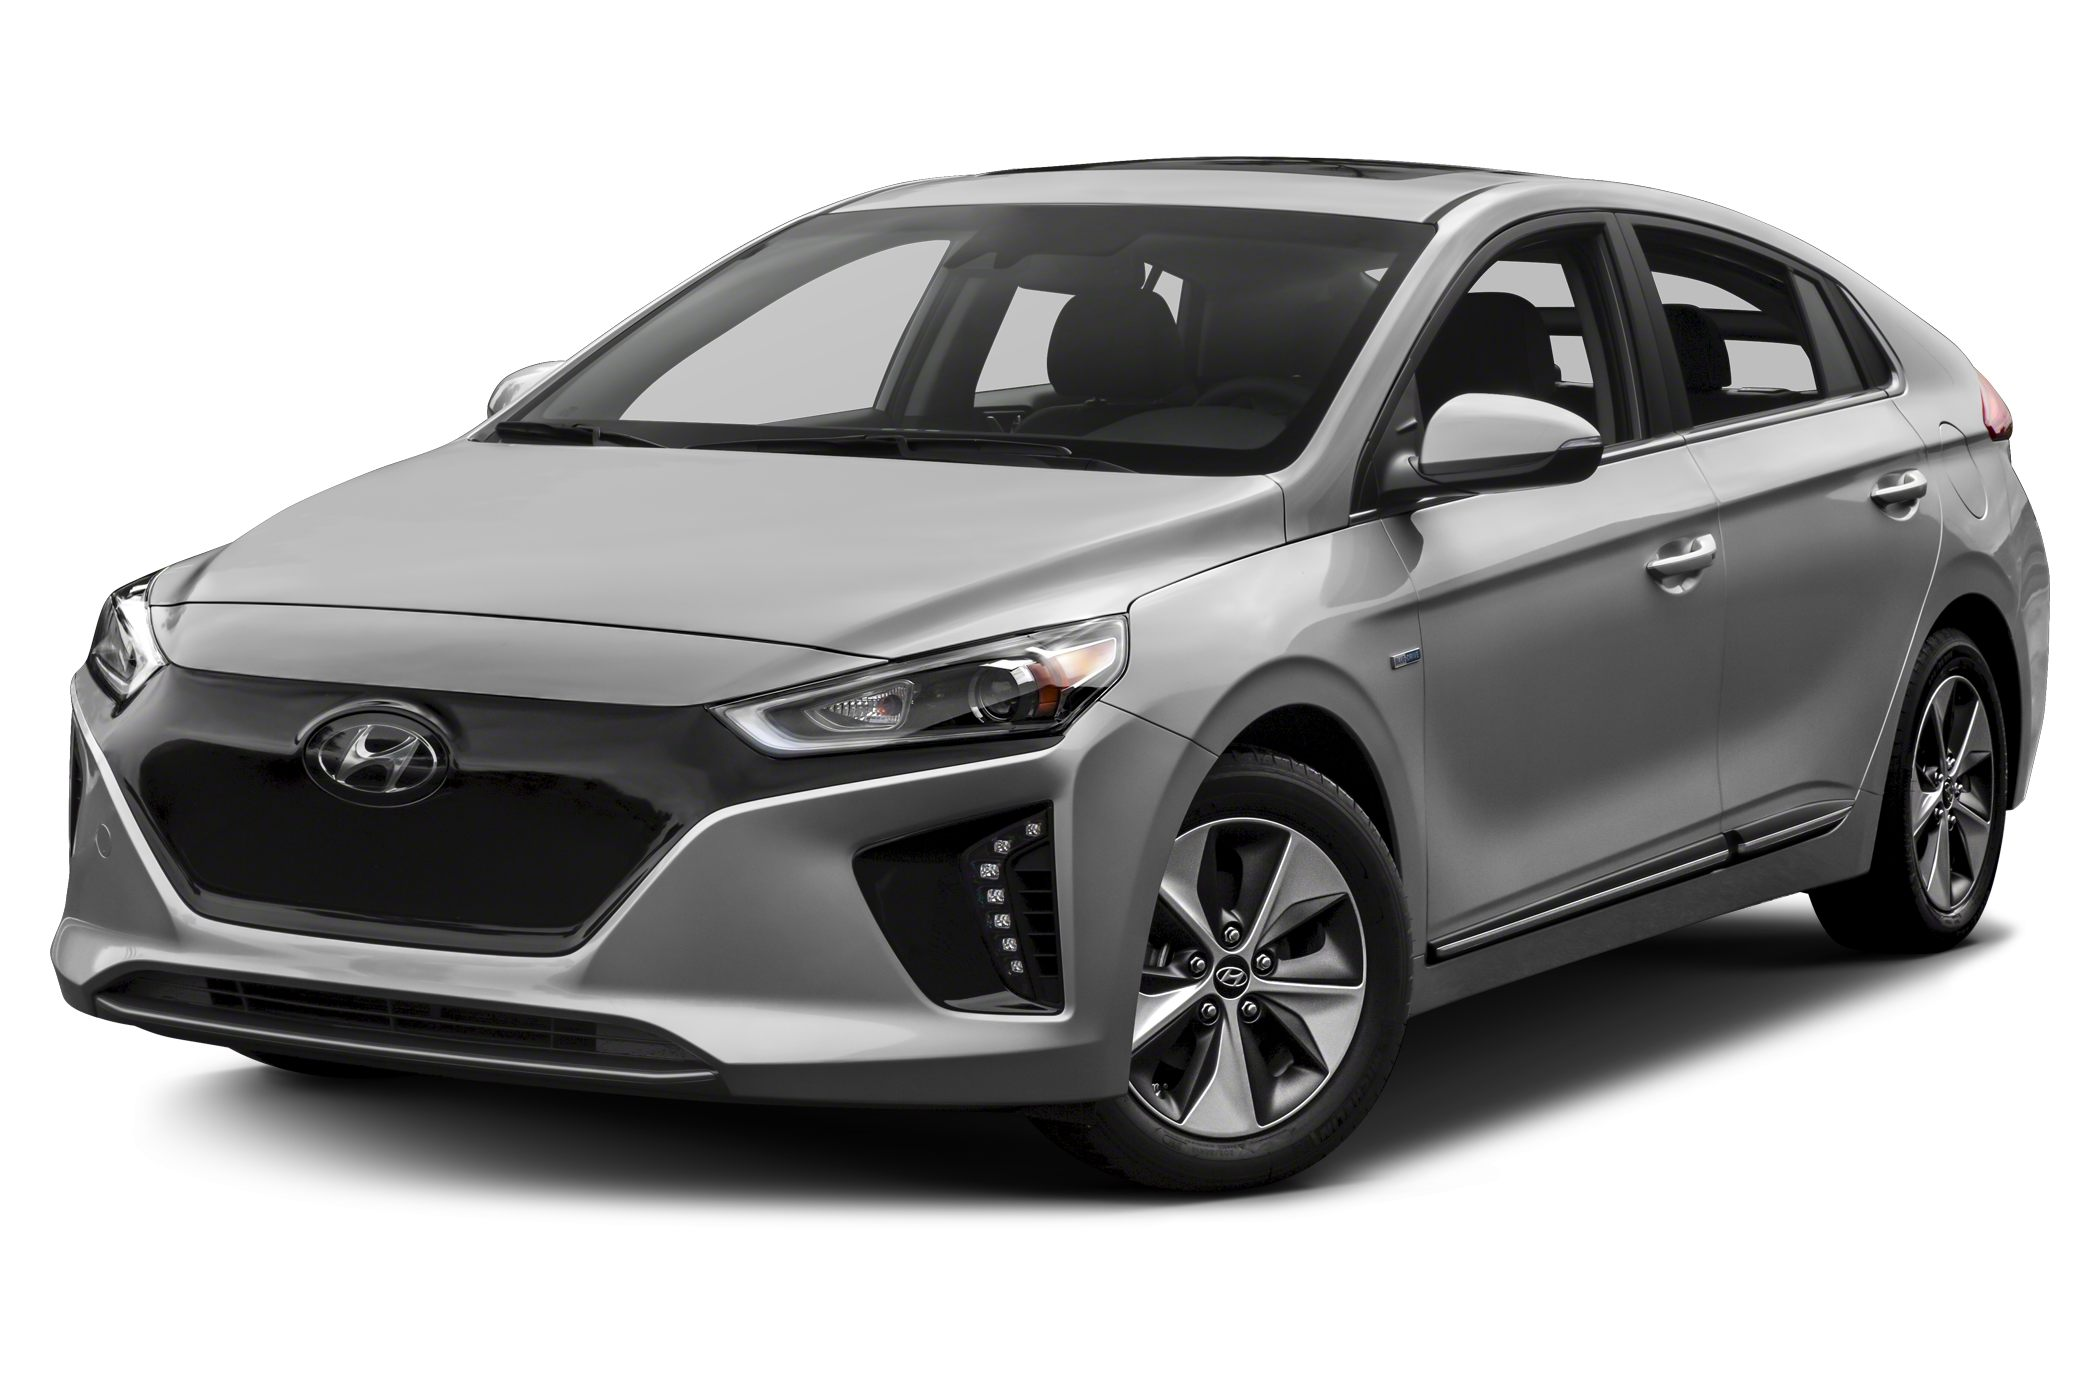 Hyundai Canada Incentives for the new 2018 Hyundai Ioniq EV Fully Electric Vehicle in Milton, Toronto, and the GTA